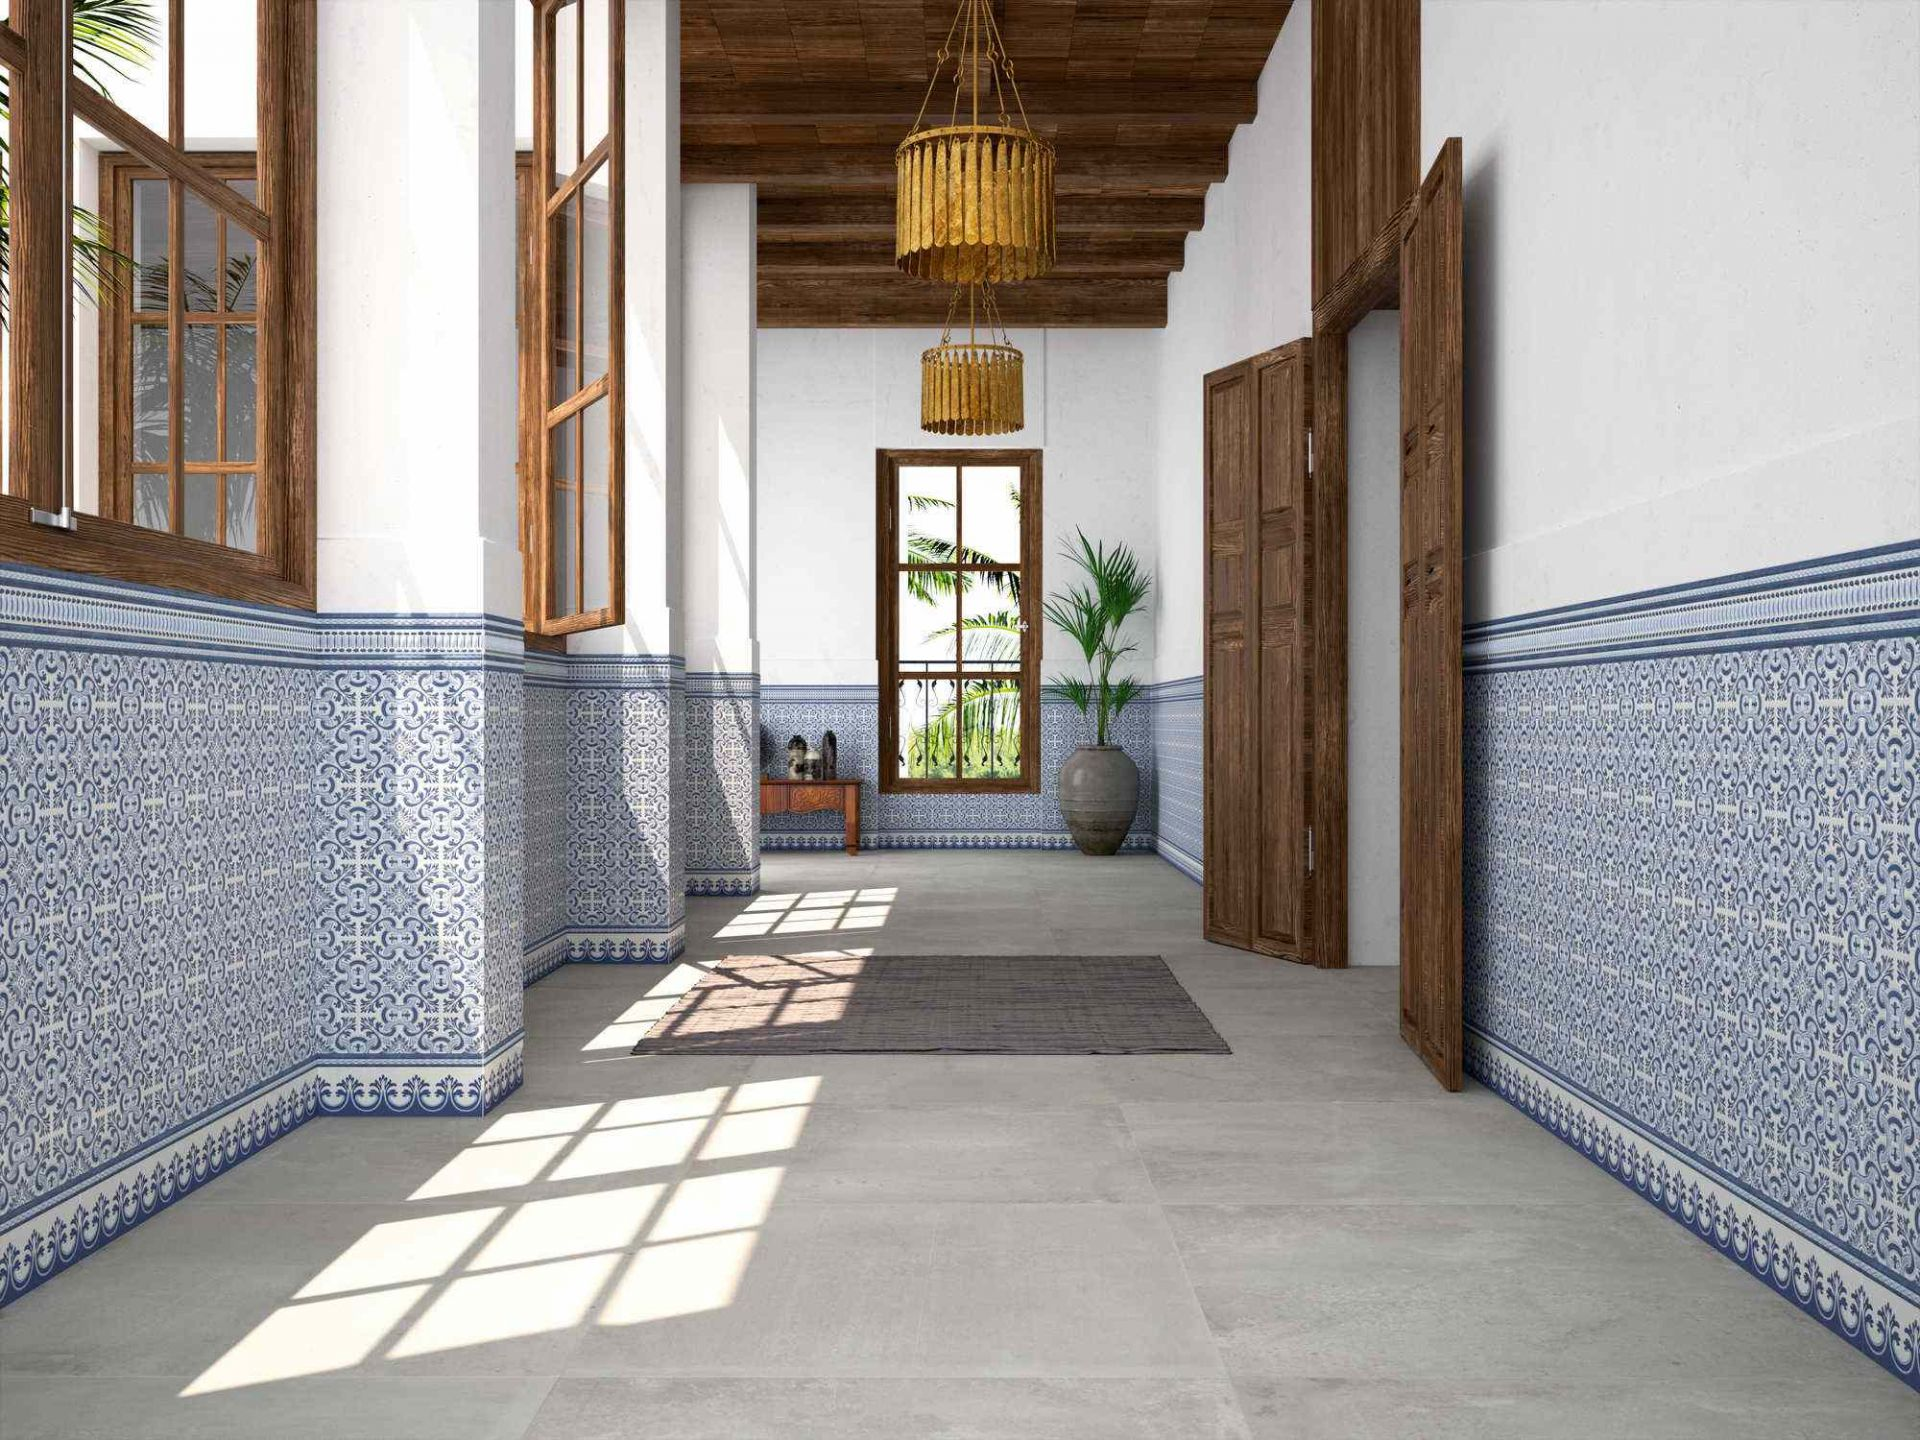 Carrelage d cor ciment style azulejos y8 carrelage for Carrelage a clipser 29 euros